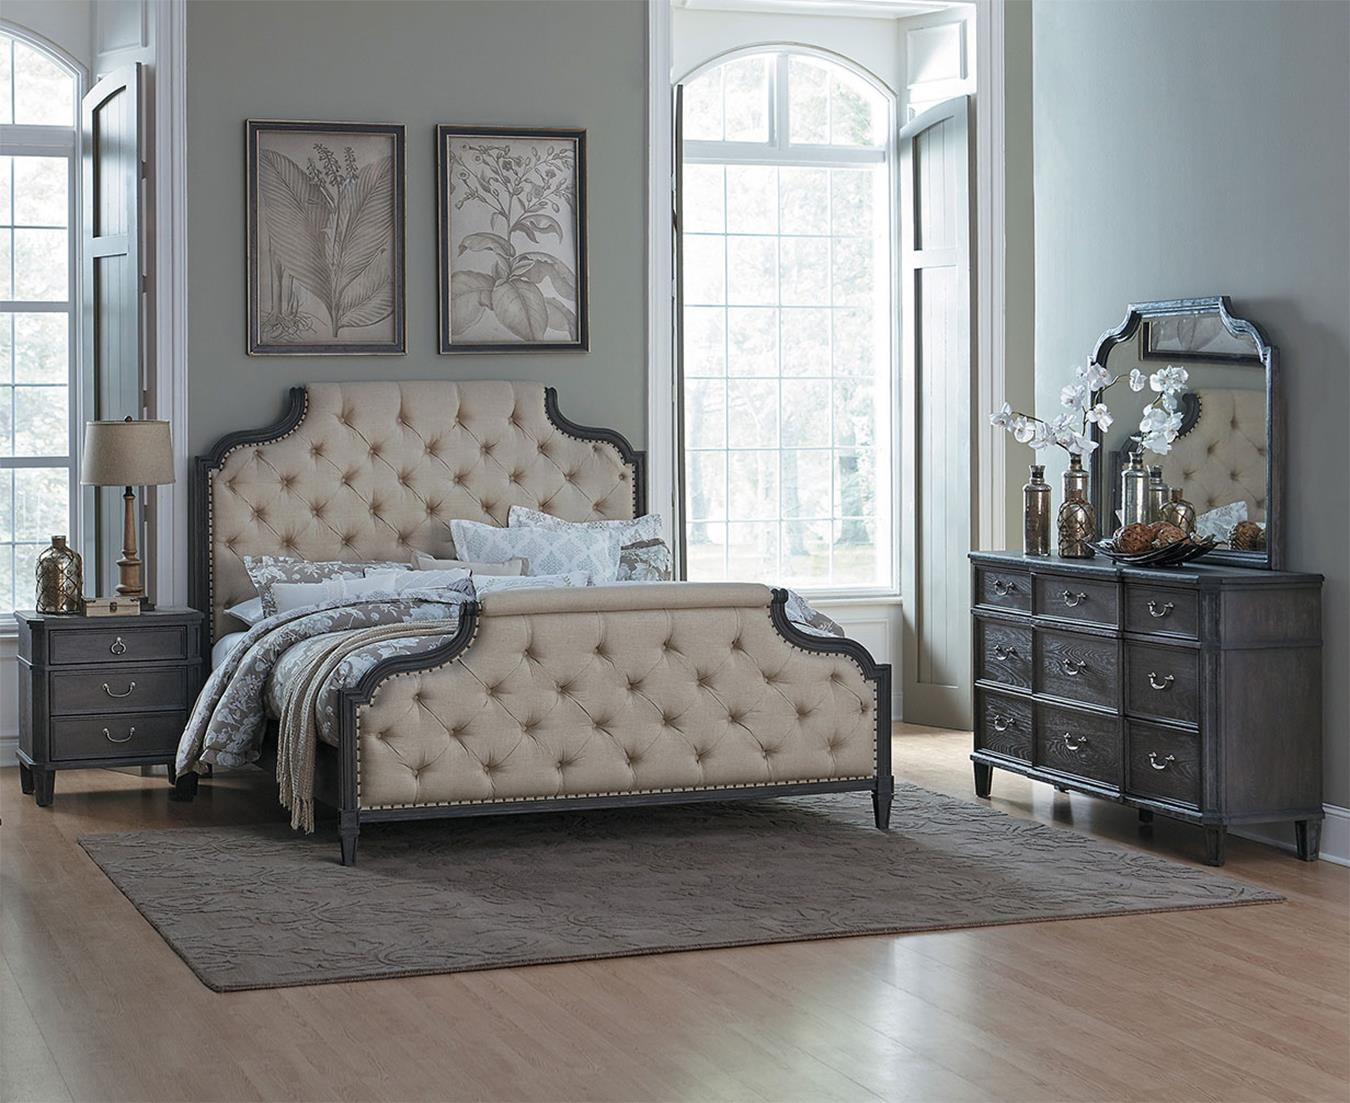 Linsday 4PC Queen Bedroom Set at Rotmans